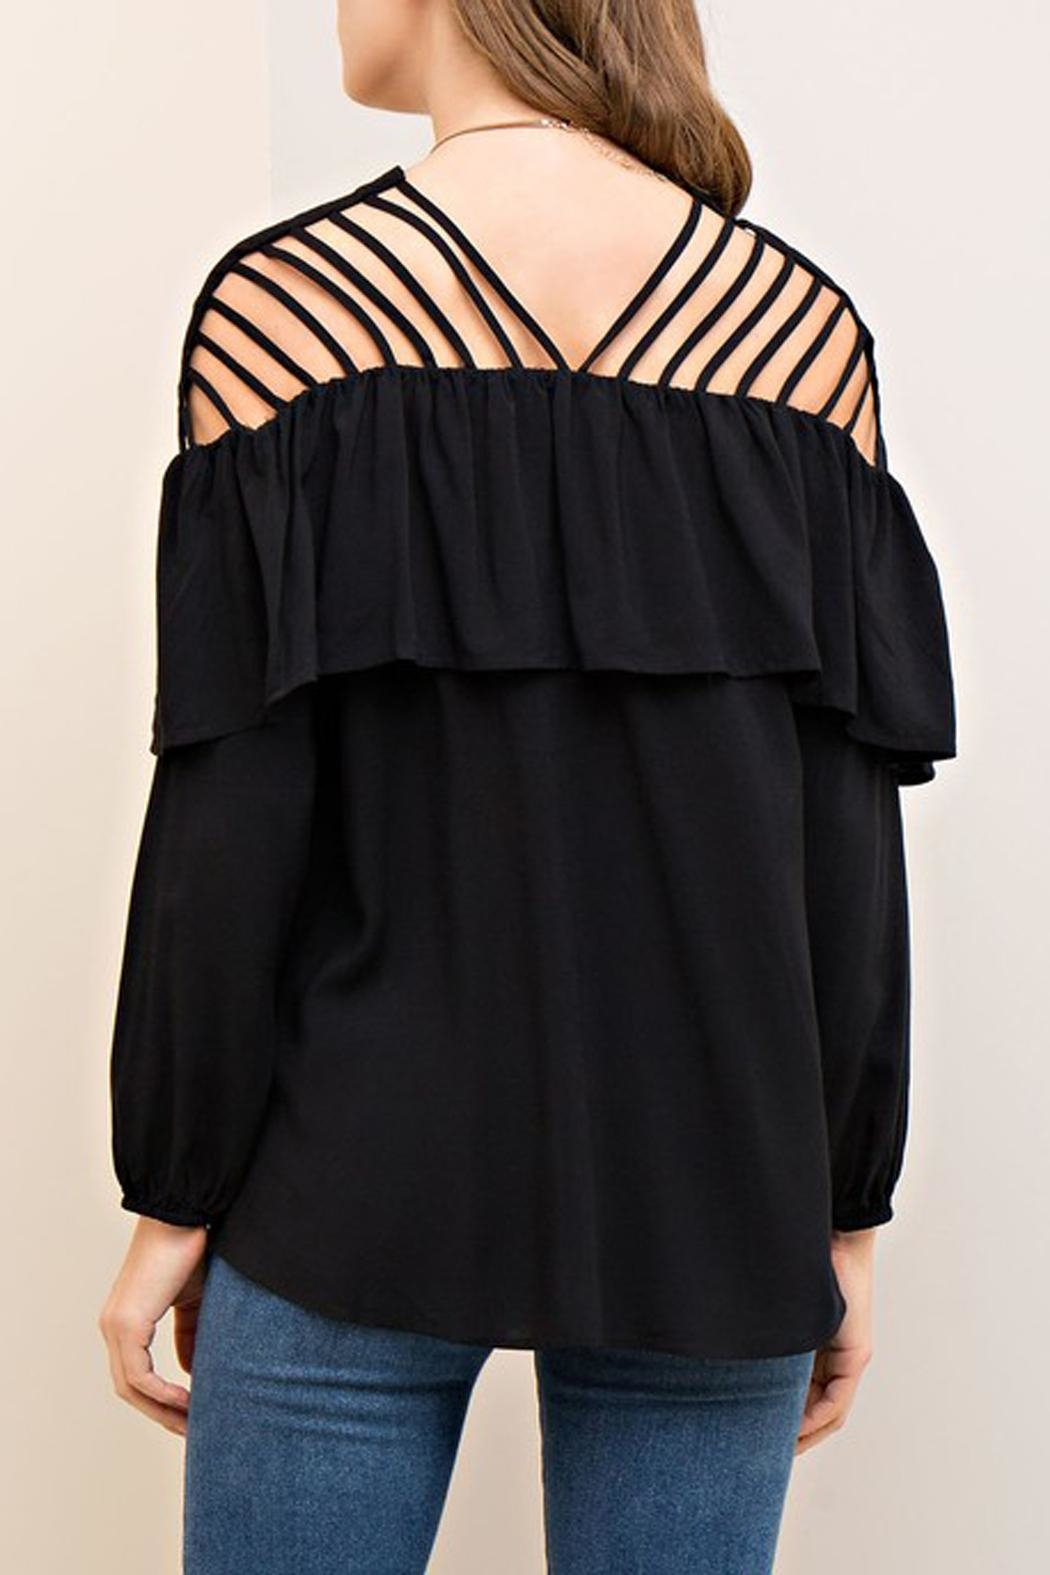 The Vintage Valet Black Ruffle Top - Side Cropped Image